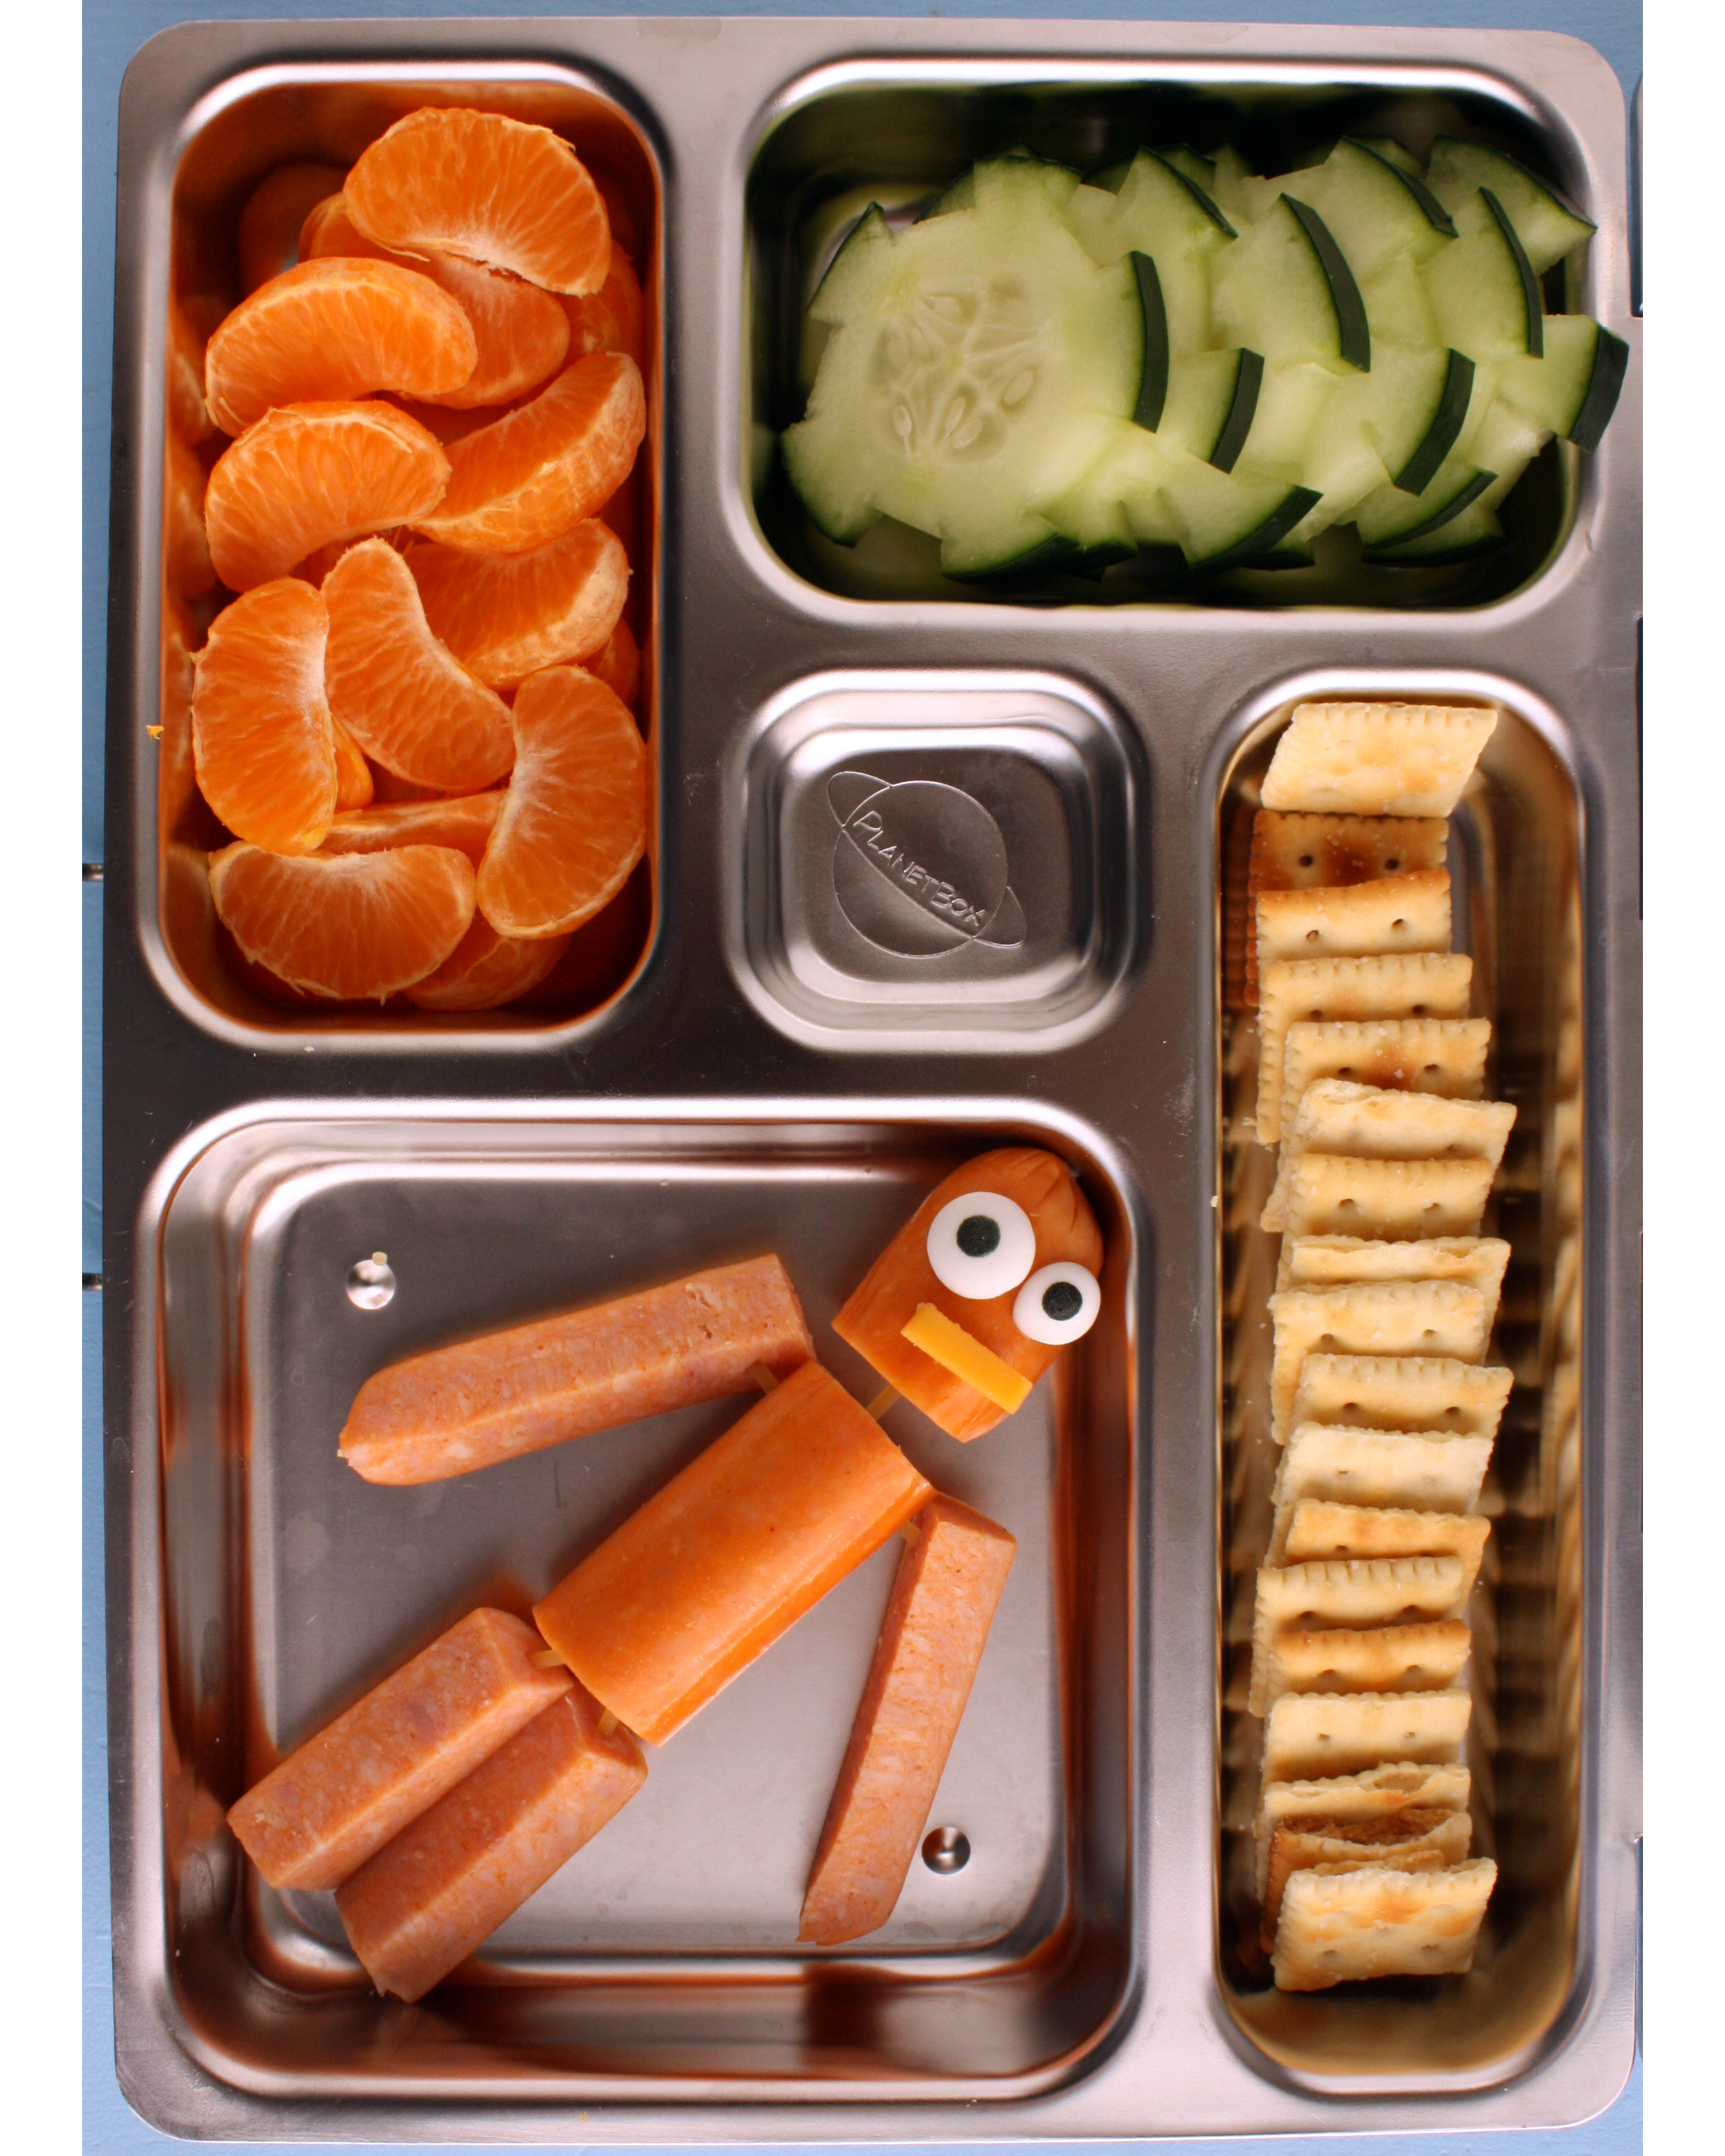 bento box robot hotdog crackers